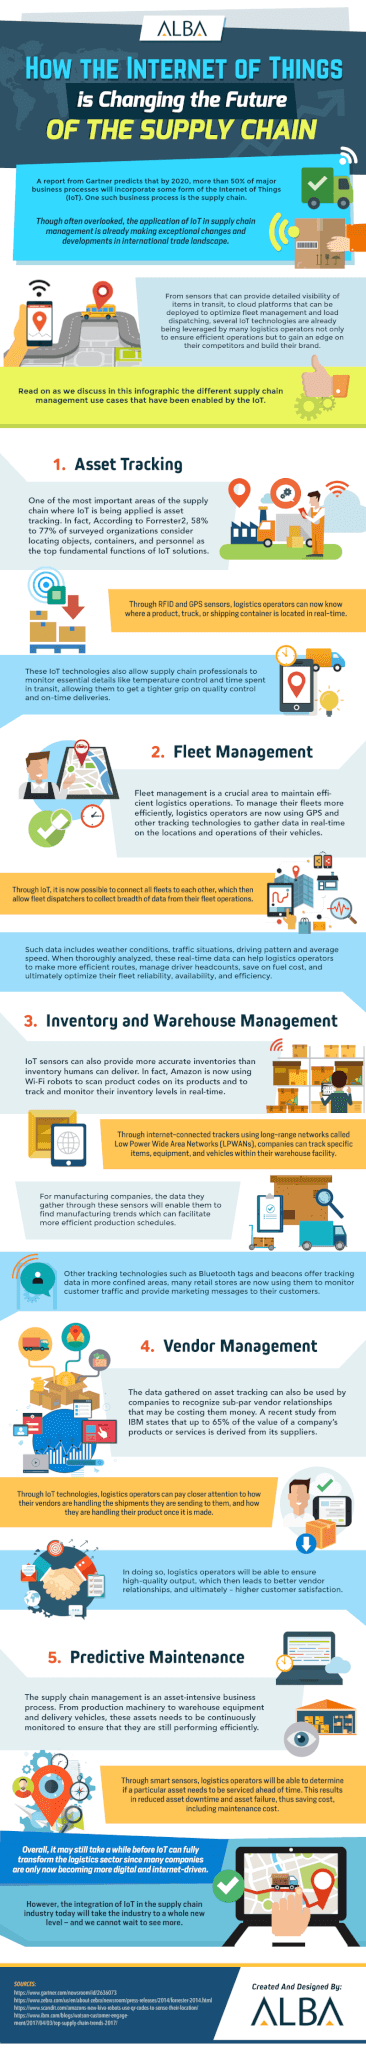 How the Internet of Things IoT is Changing the Future of the Supply Chain